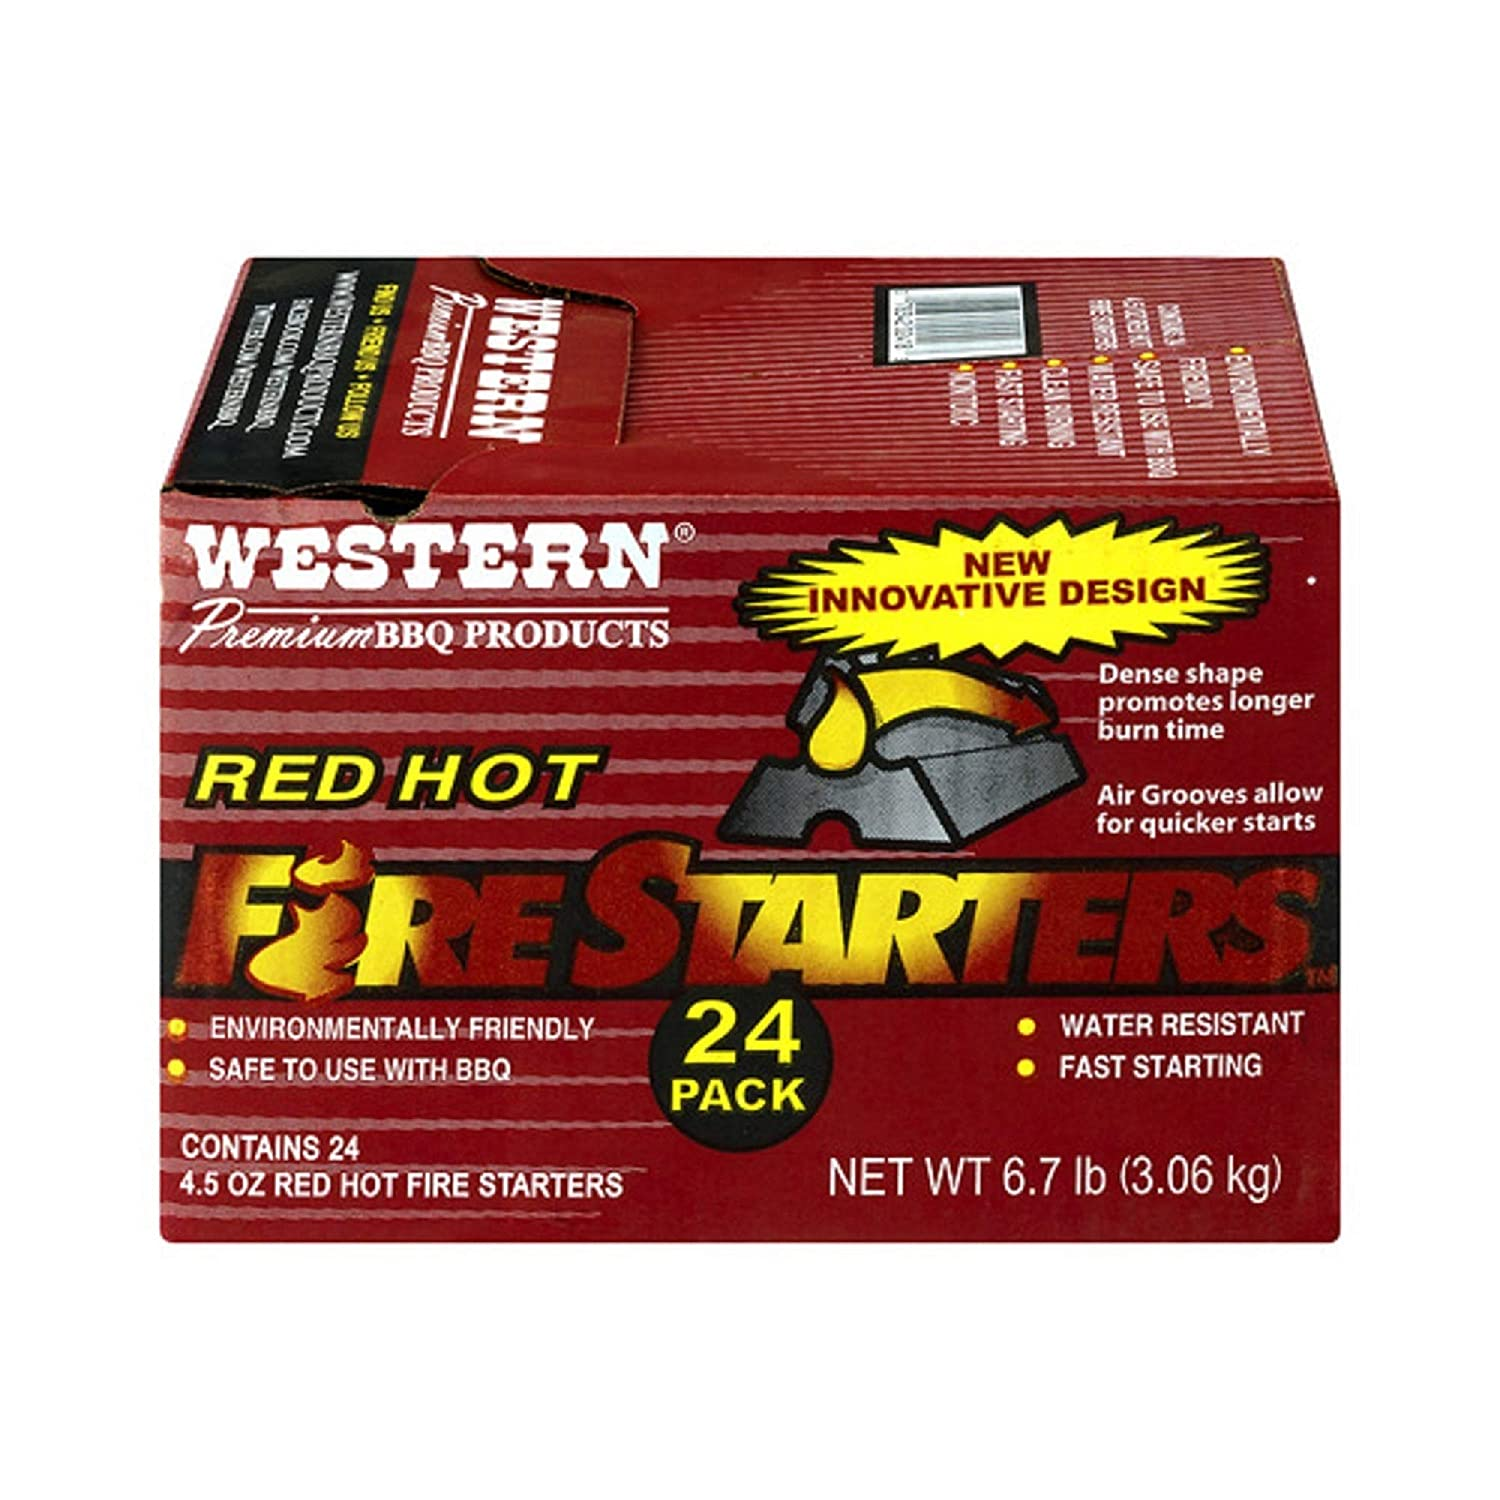 Western Premium BBQ Products Red Hot Fire Starters, 24 Pack WW Wood inc 02418